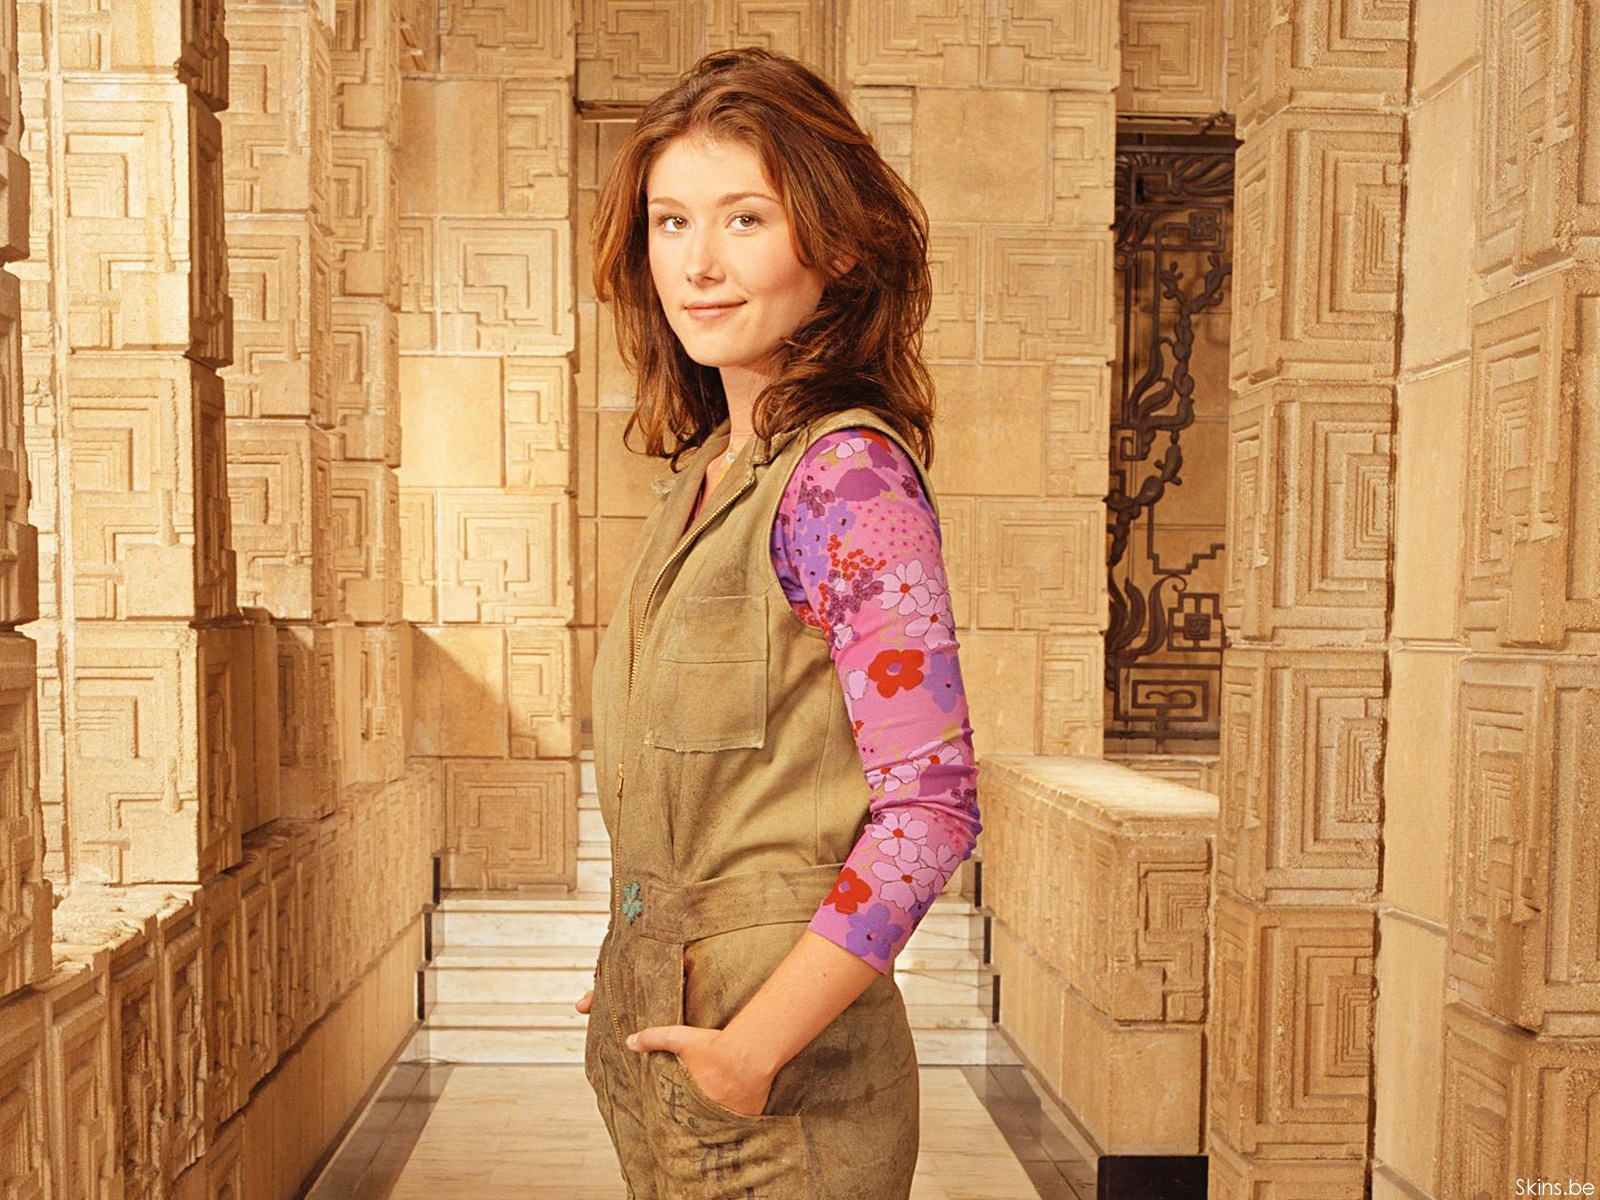 Jewel Staite wallpaper (#30015)